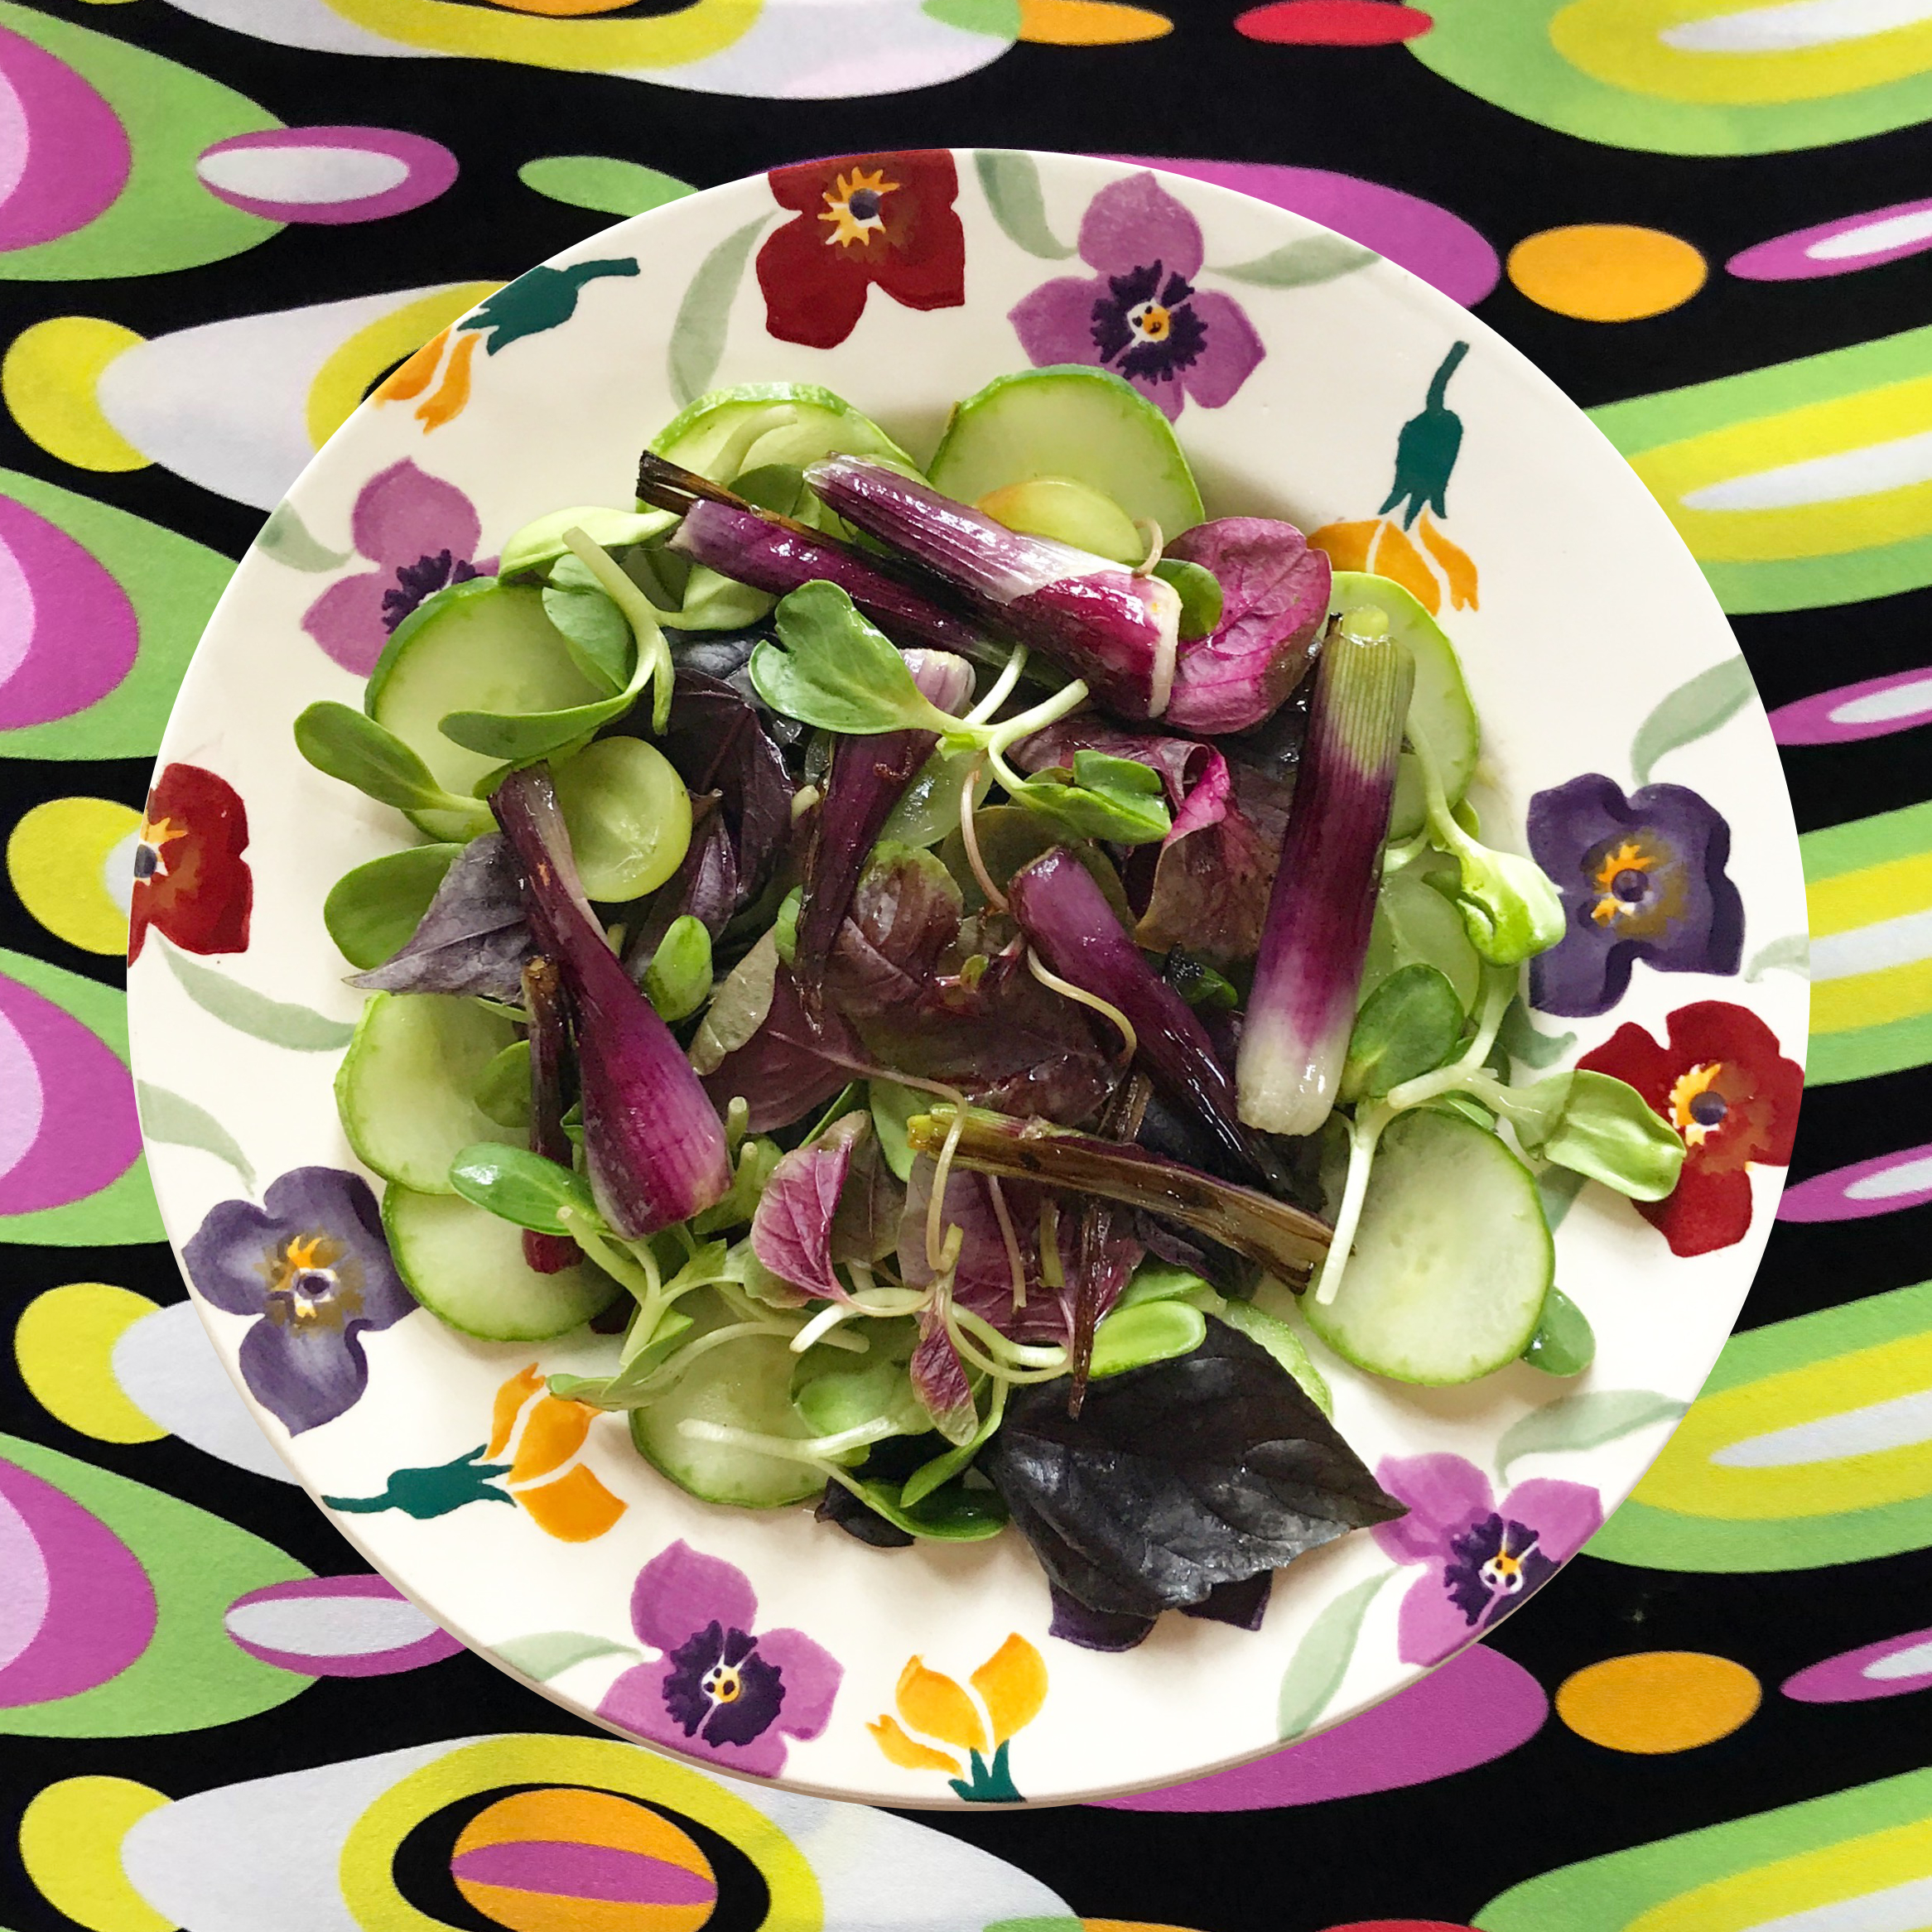 Purple basil, purple scallions, Persian cucumbers, green grapes and sunflower shoots with lemony vinaigrette, on an Emma Bridgewater plate